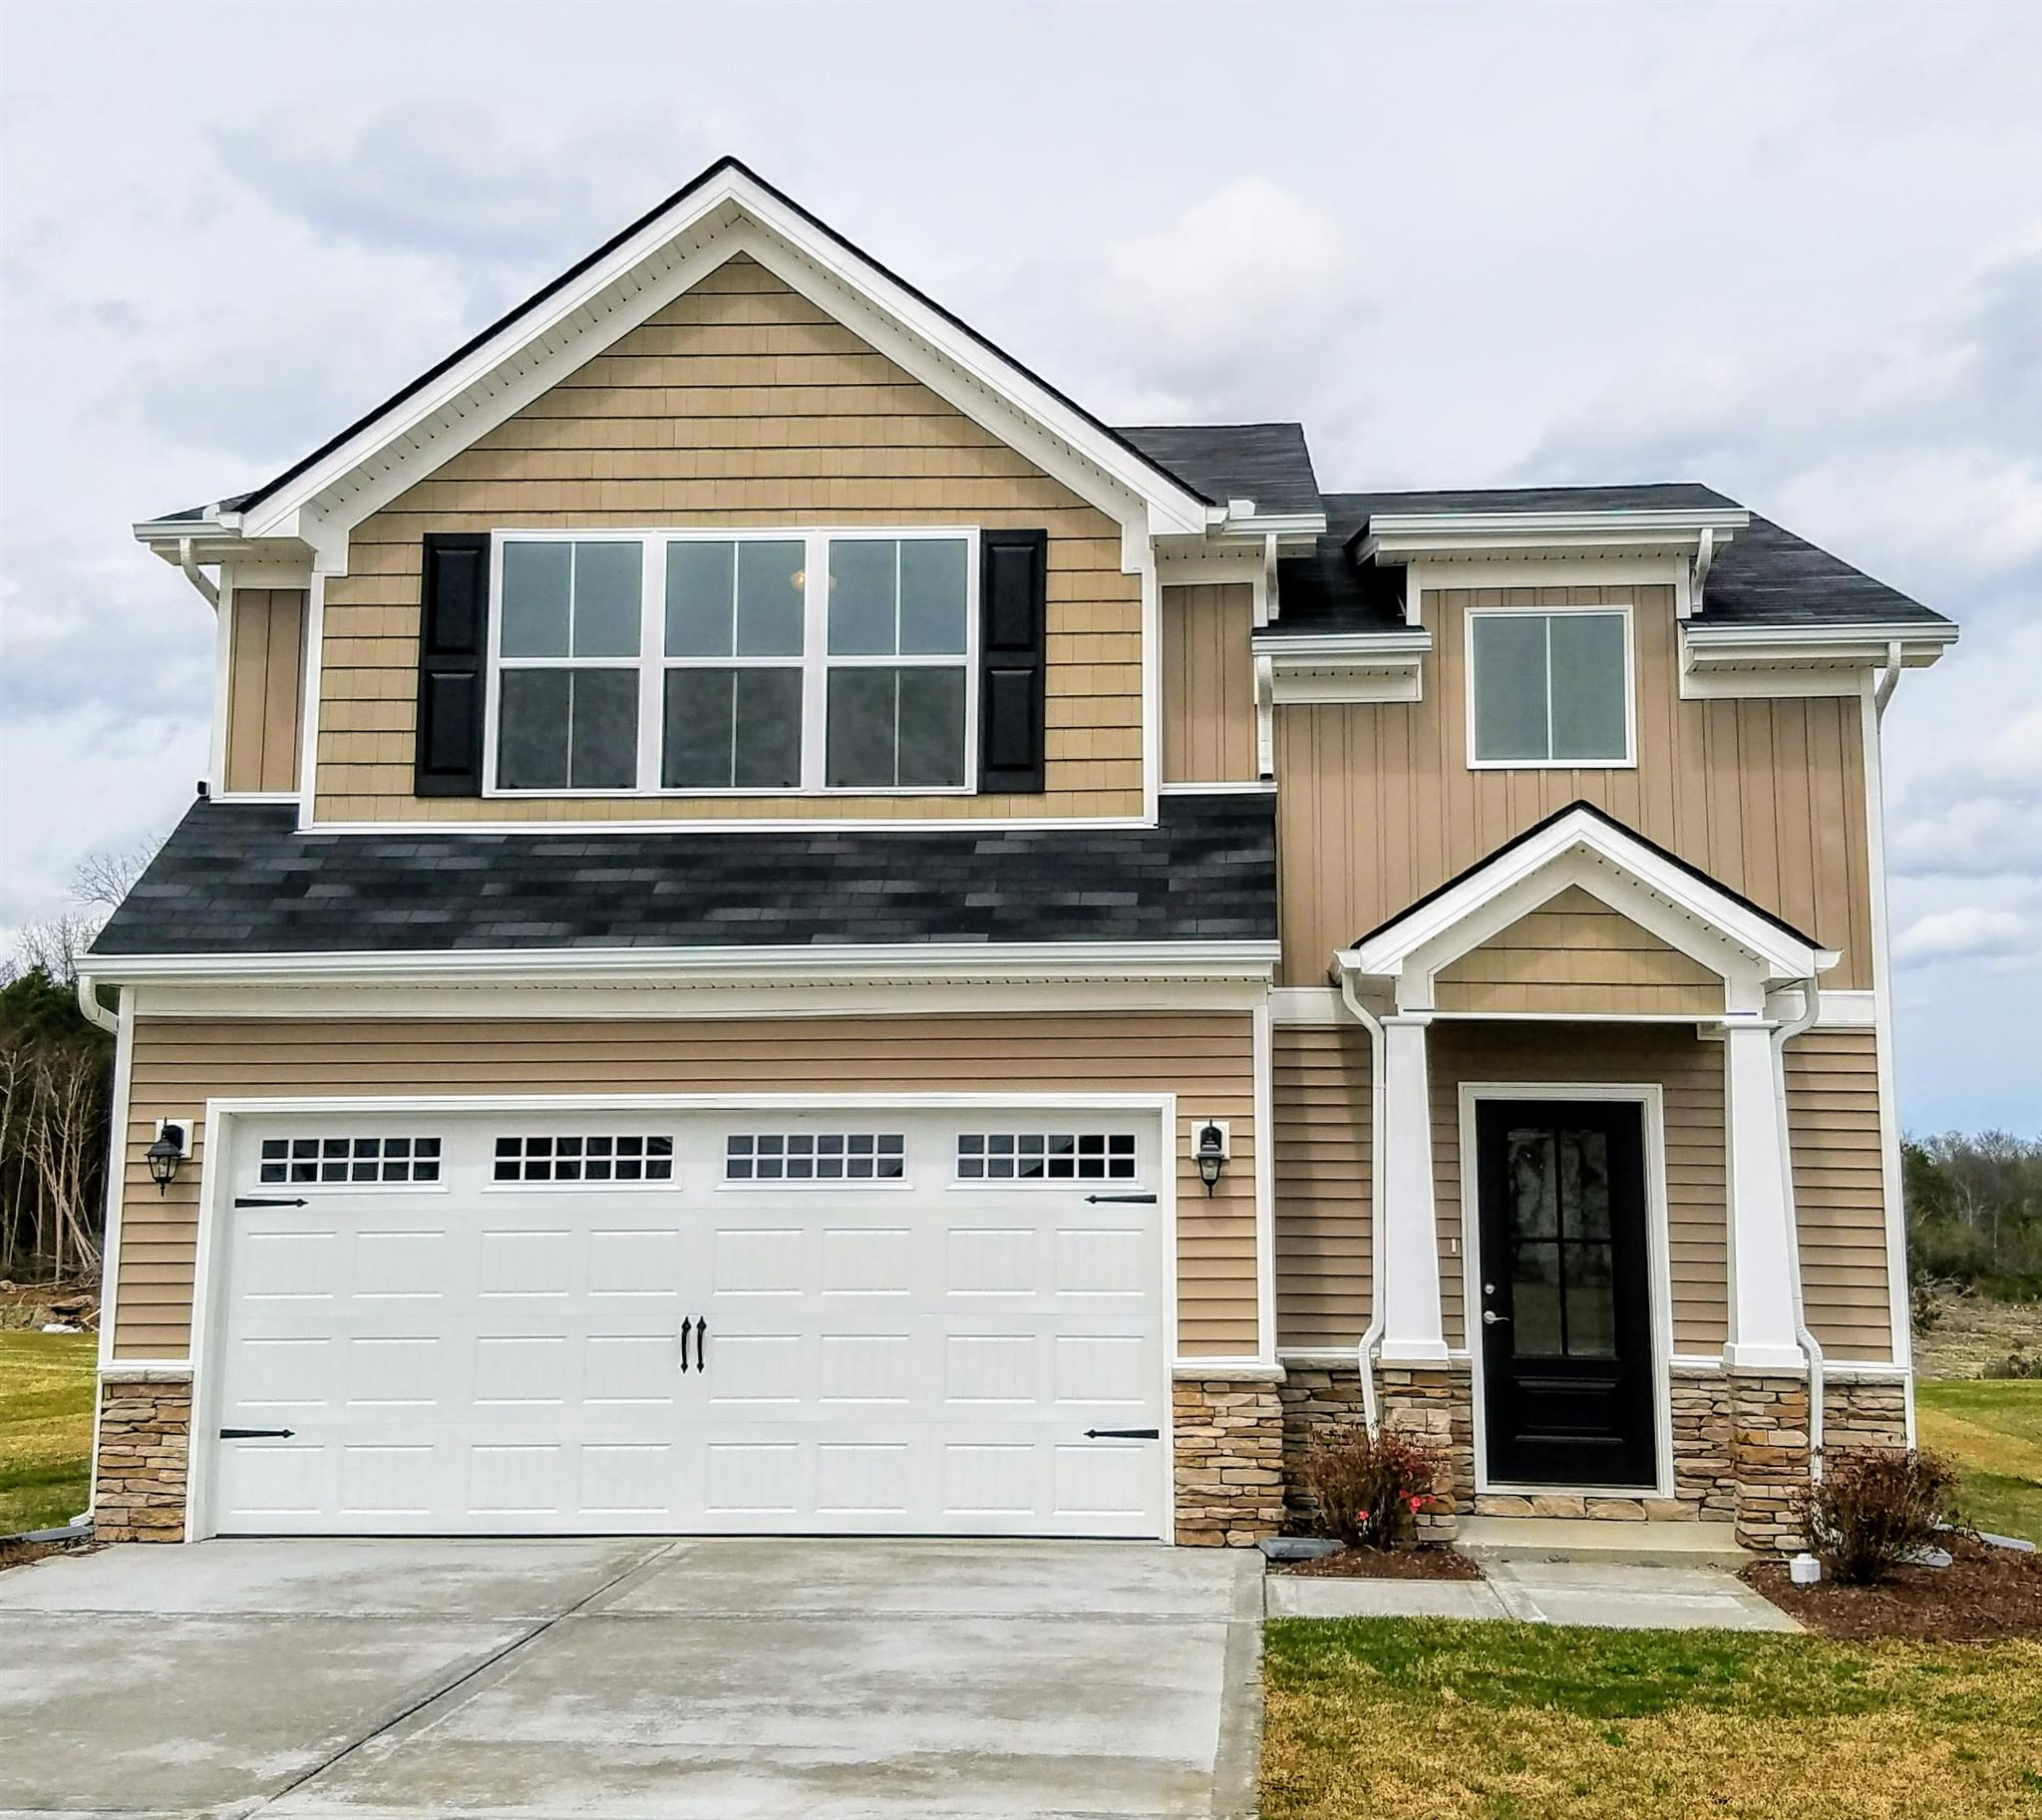 1729 Sunray Dr - Lot 128, Murfreesboro, TN 37127 - Murfreesboro, TN real estate listing